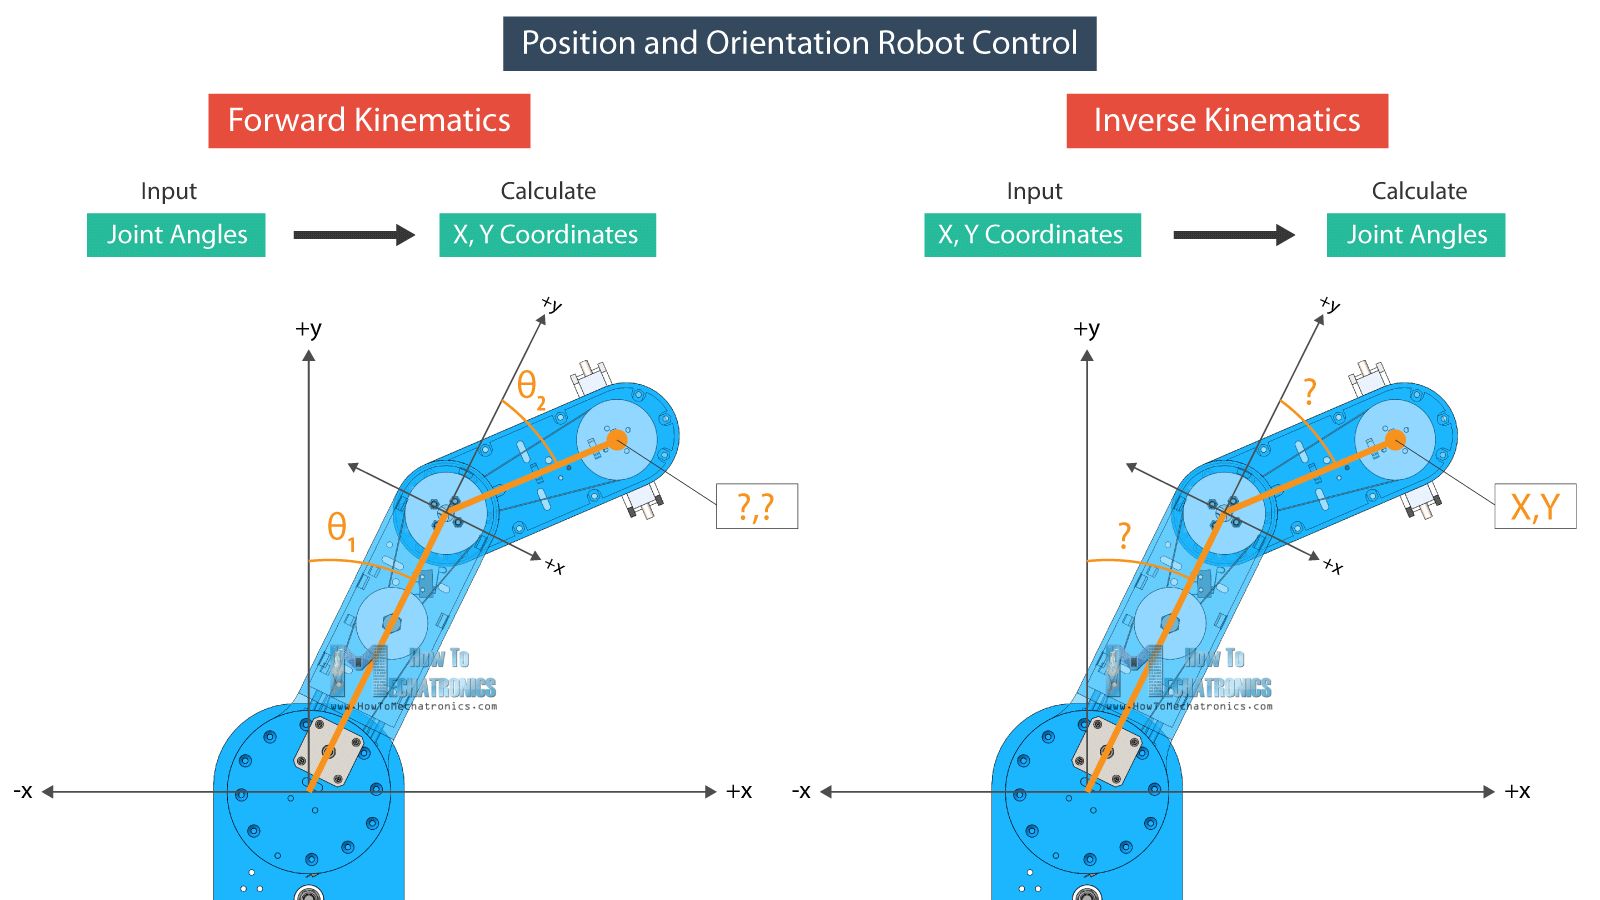 Forward and Inverse Kinematics for SCARA Robot Control - How It Works